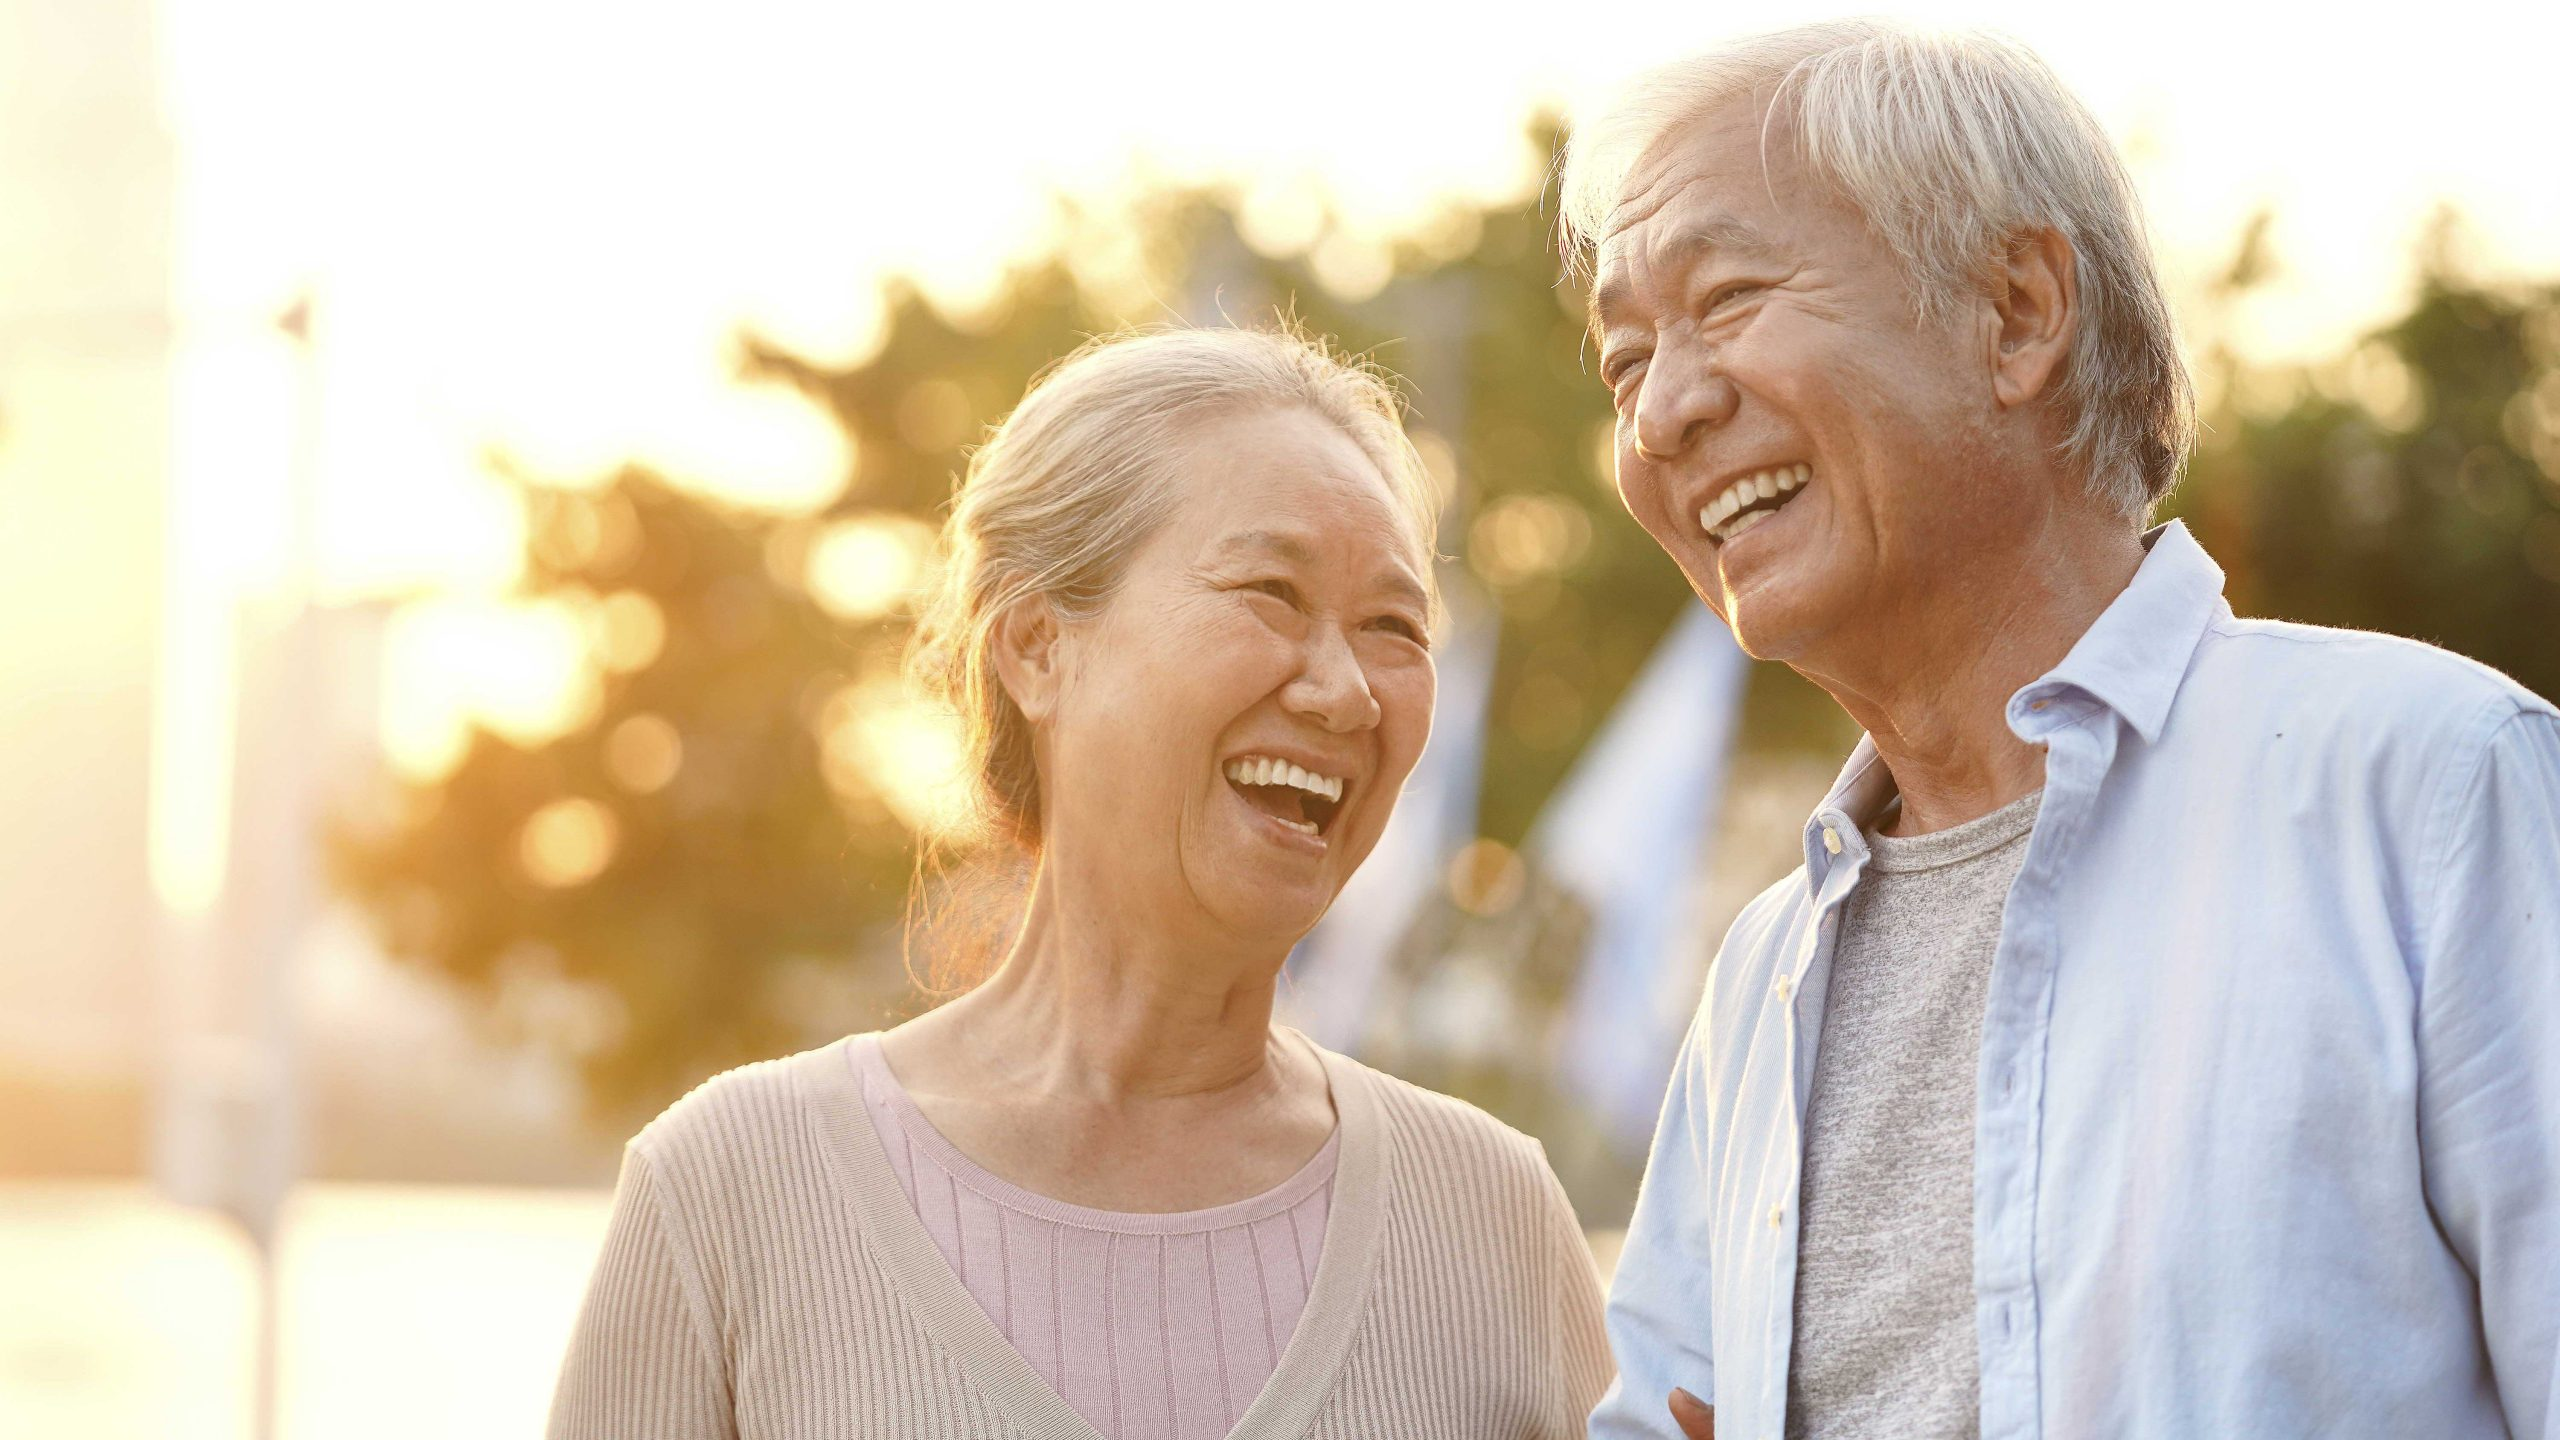 Happy Seniors Couple Laughing in the Sunshine